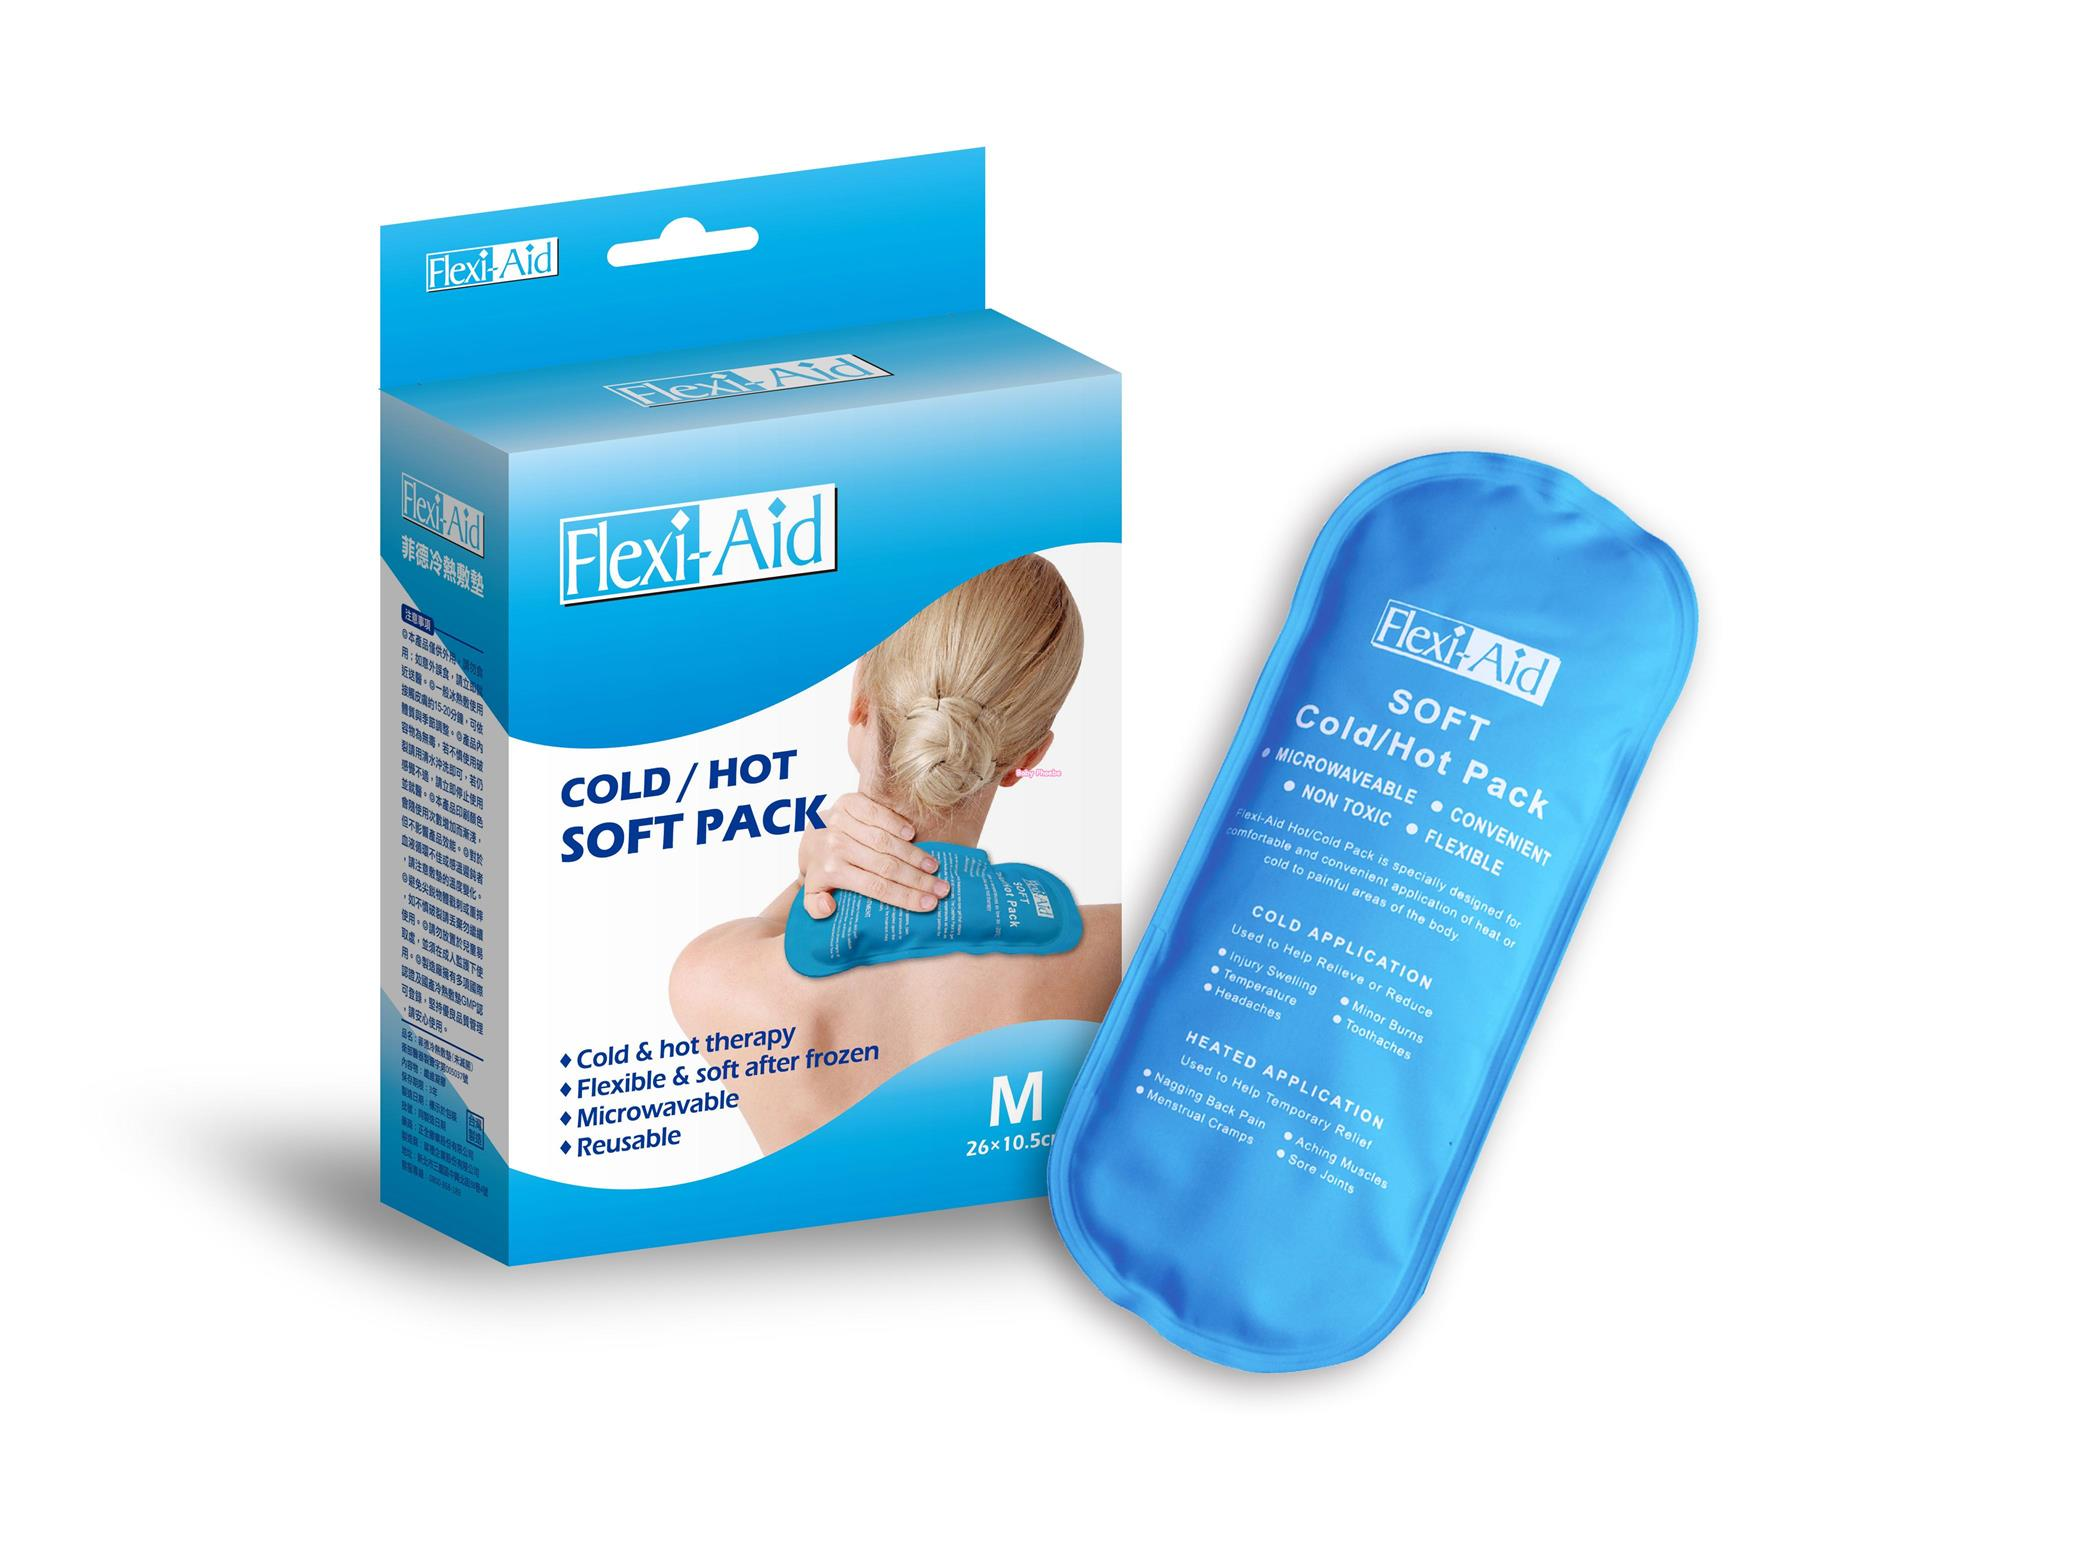 Flexi-Aid Cold/Hot Soft Pack